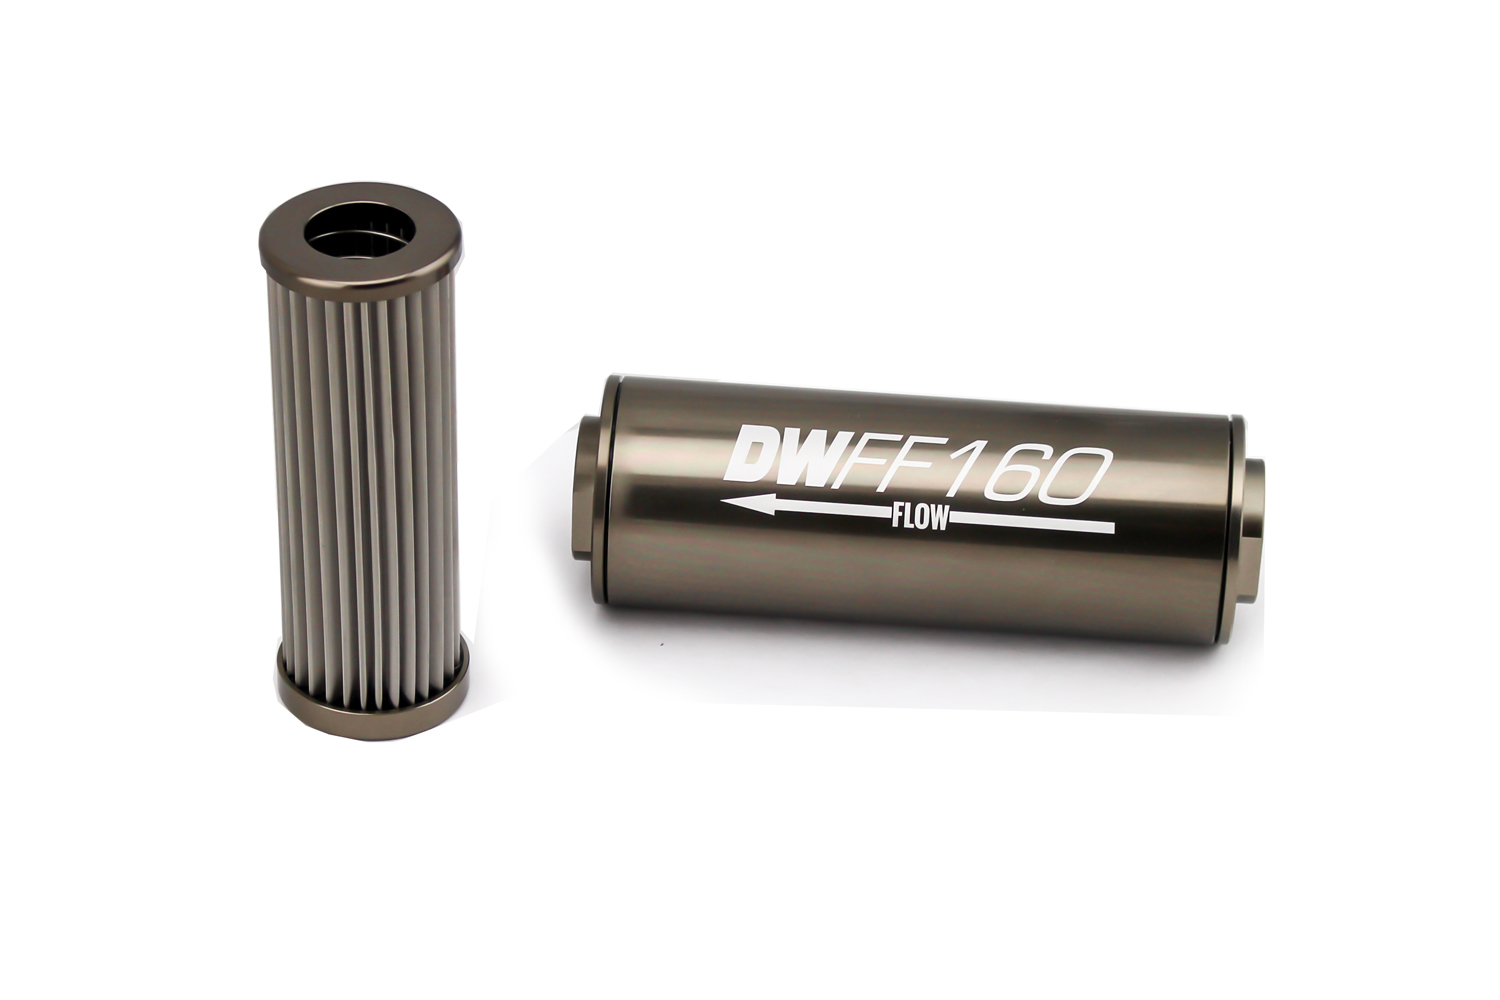 Deatschwerks 8-03-160-100K Fuel Filter, In-Line, 100 Micron, Stainless Element, 8 AN Female Inlet, 8 AN Female Outlet, 160 mm Long, Aluminum, Titanium Anodize, Each